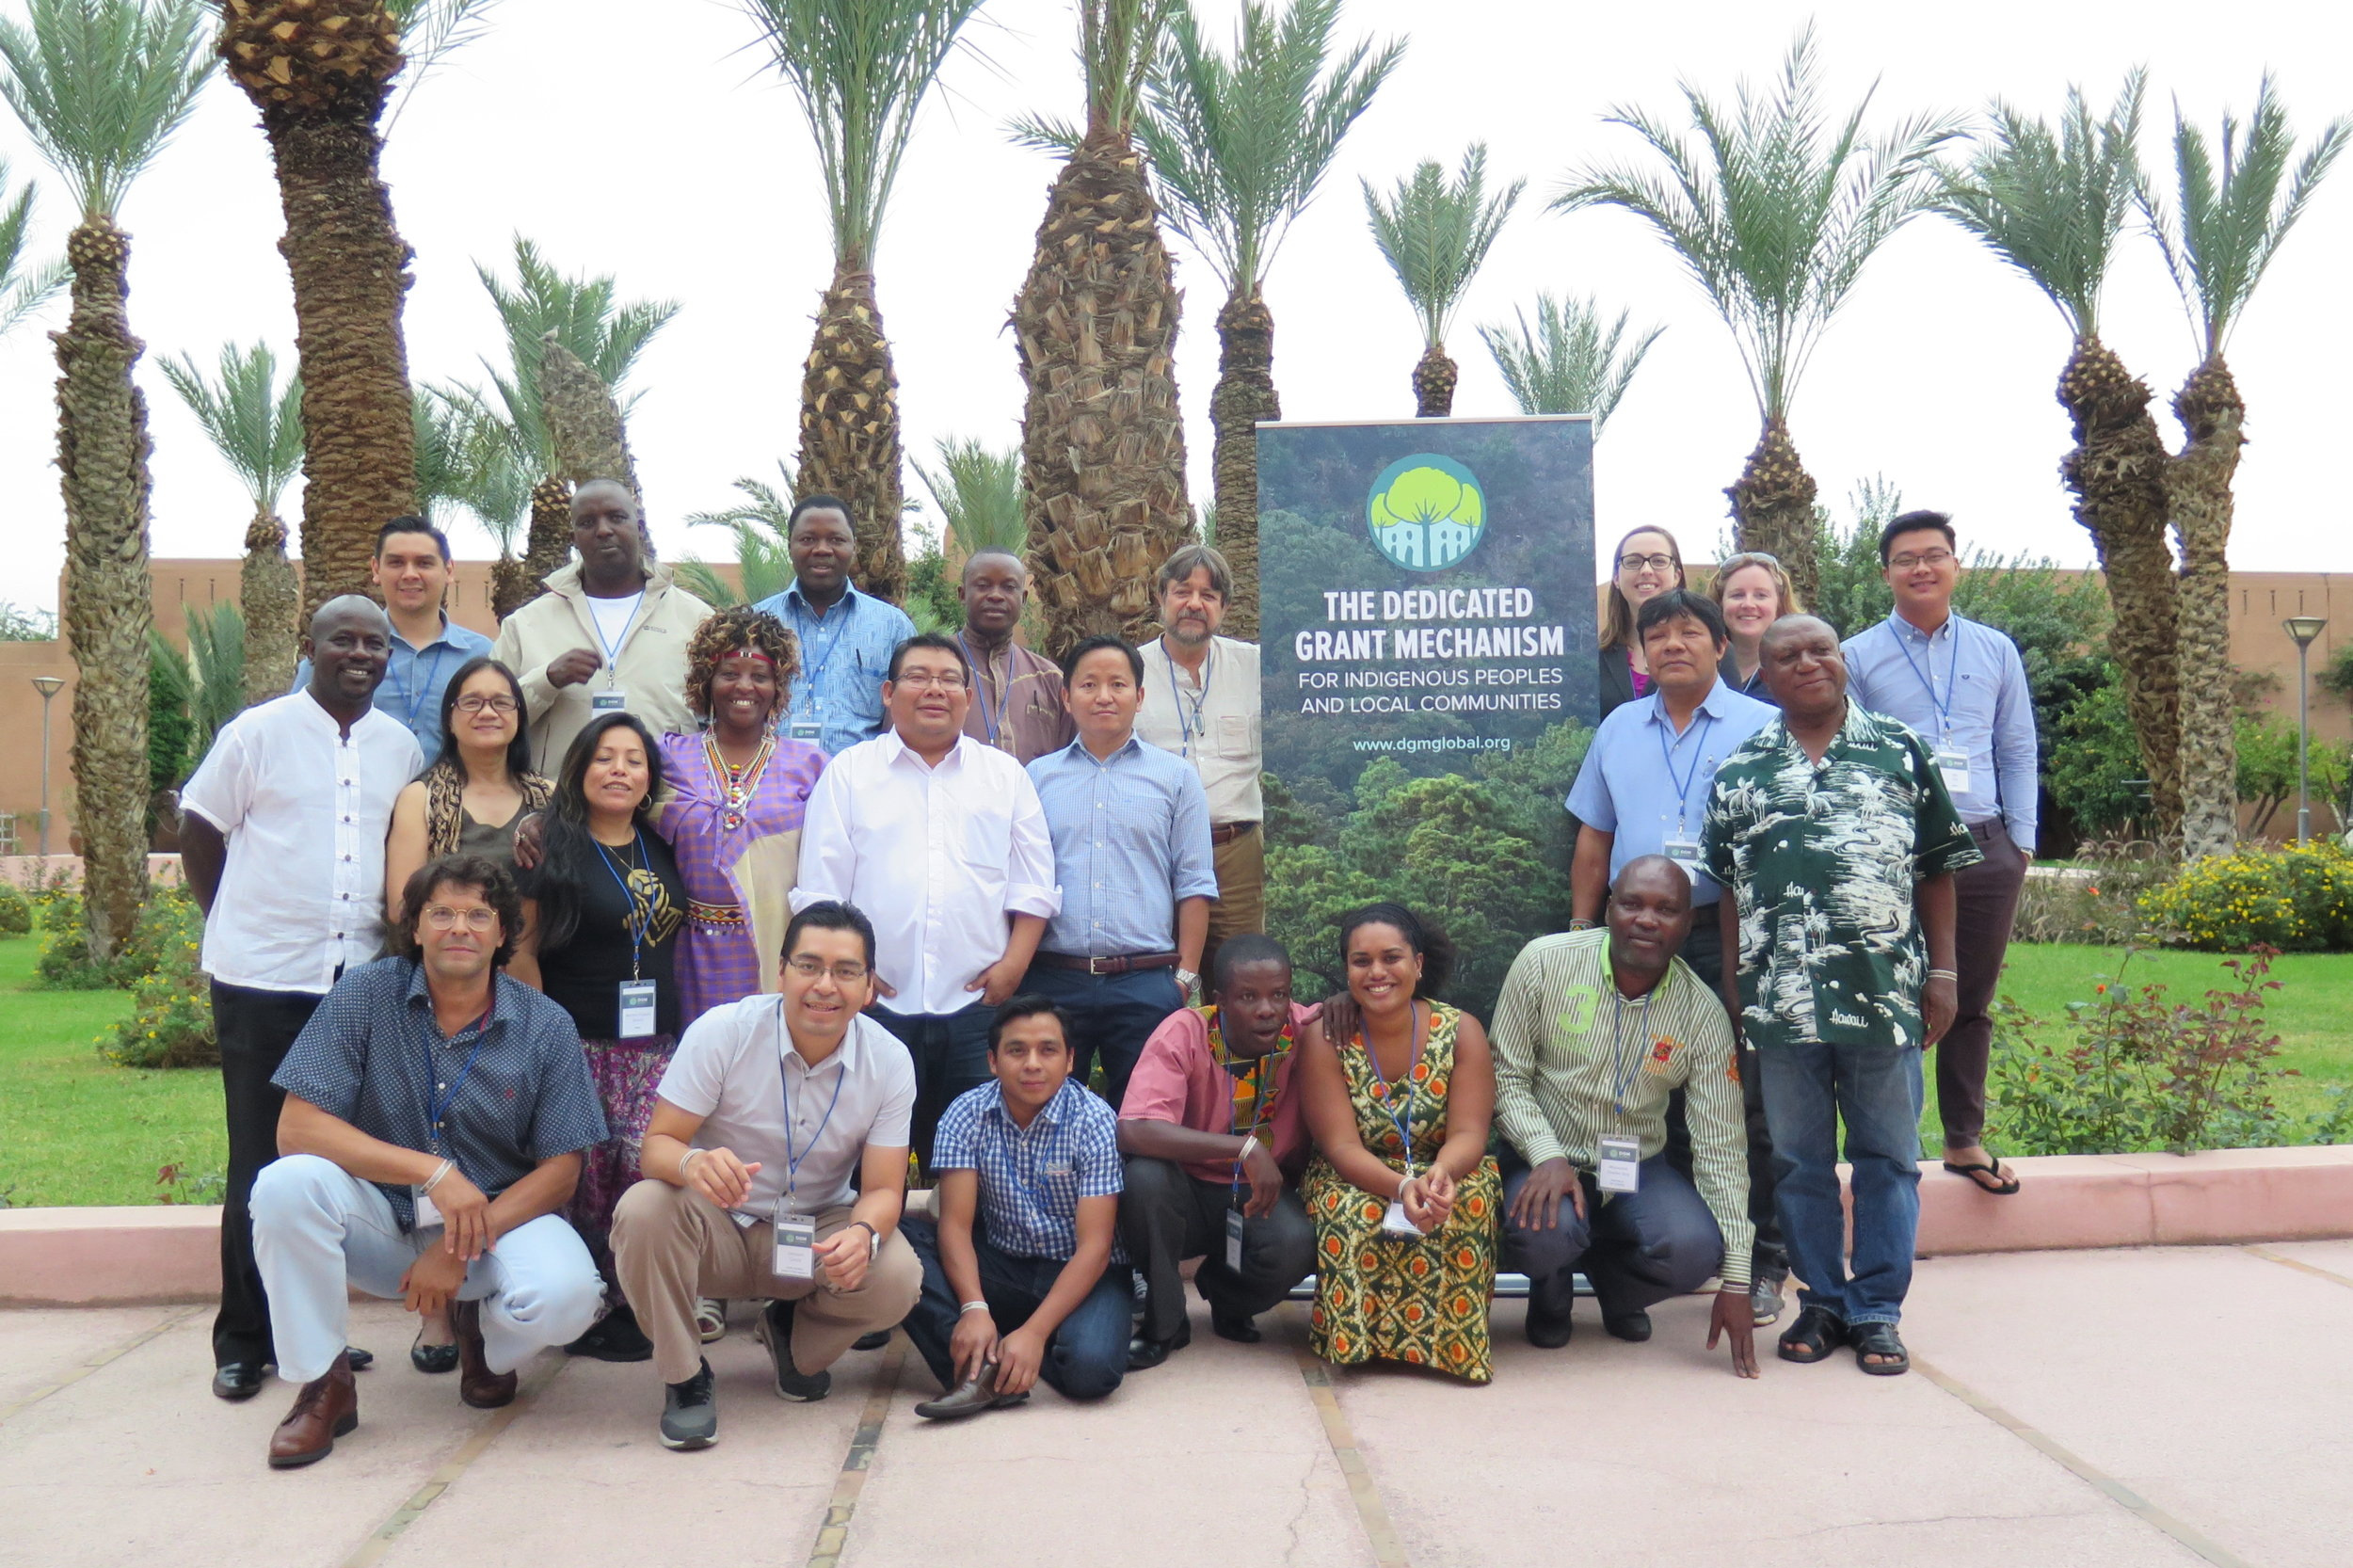 Global Exchange - Marrakesh, Morocco - November 201619 IPLC Participants (5 Women)5 Non-IPLC Partners15 Countries RepresentedKey Topics: Climate Policy, Climate Finance, REDD+, Finance Mapping Exercise, COP 22 Messaging, Engagement with IIPFCC, Panels on INDCs and LCIP PlatformAgenda | Booklet | Report